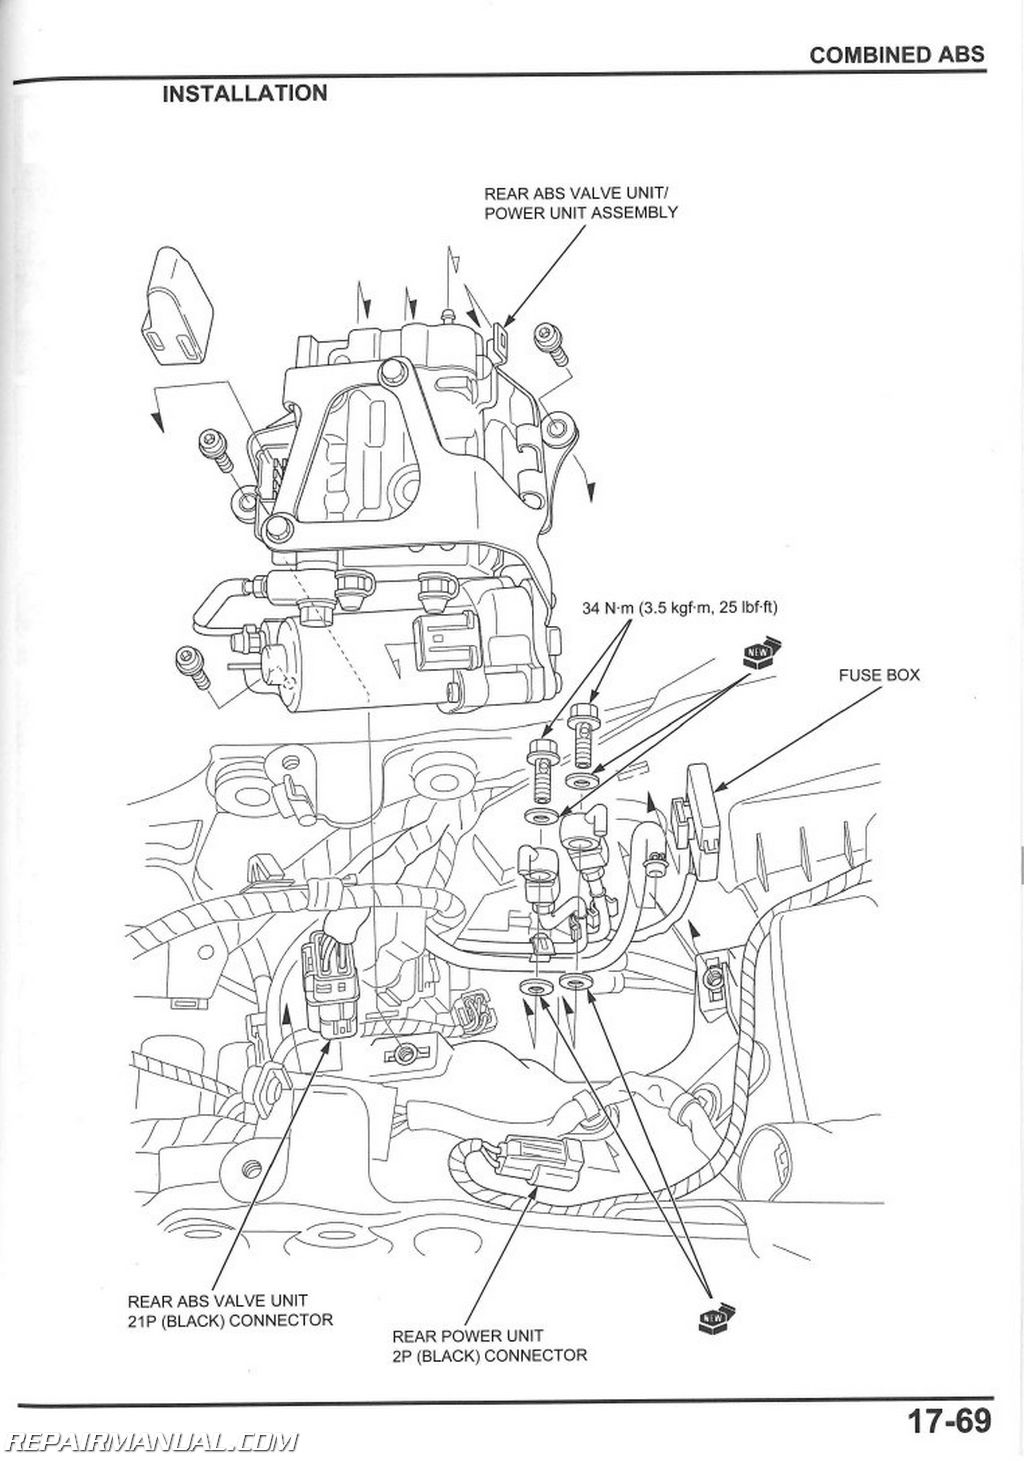 2008 2014 Honda CBR1000RR Service Manual page 1 2008 cbr1000rr wiring diagram honda cbr1000rr engine \u2022 free wiring 2007 honda cbr600rr fuse box at readyjetset.co